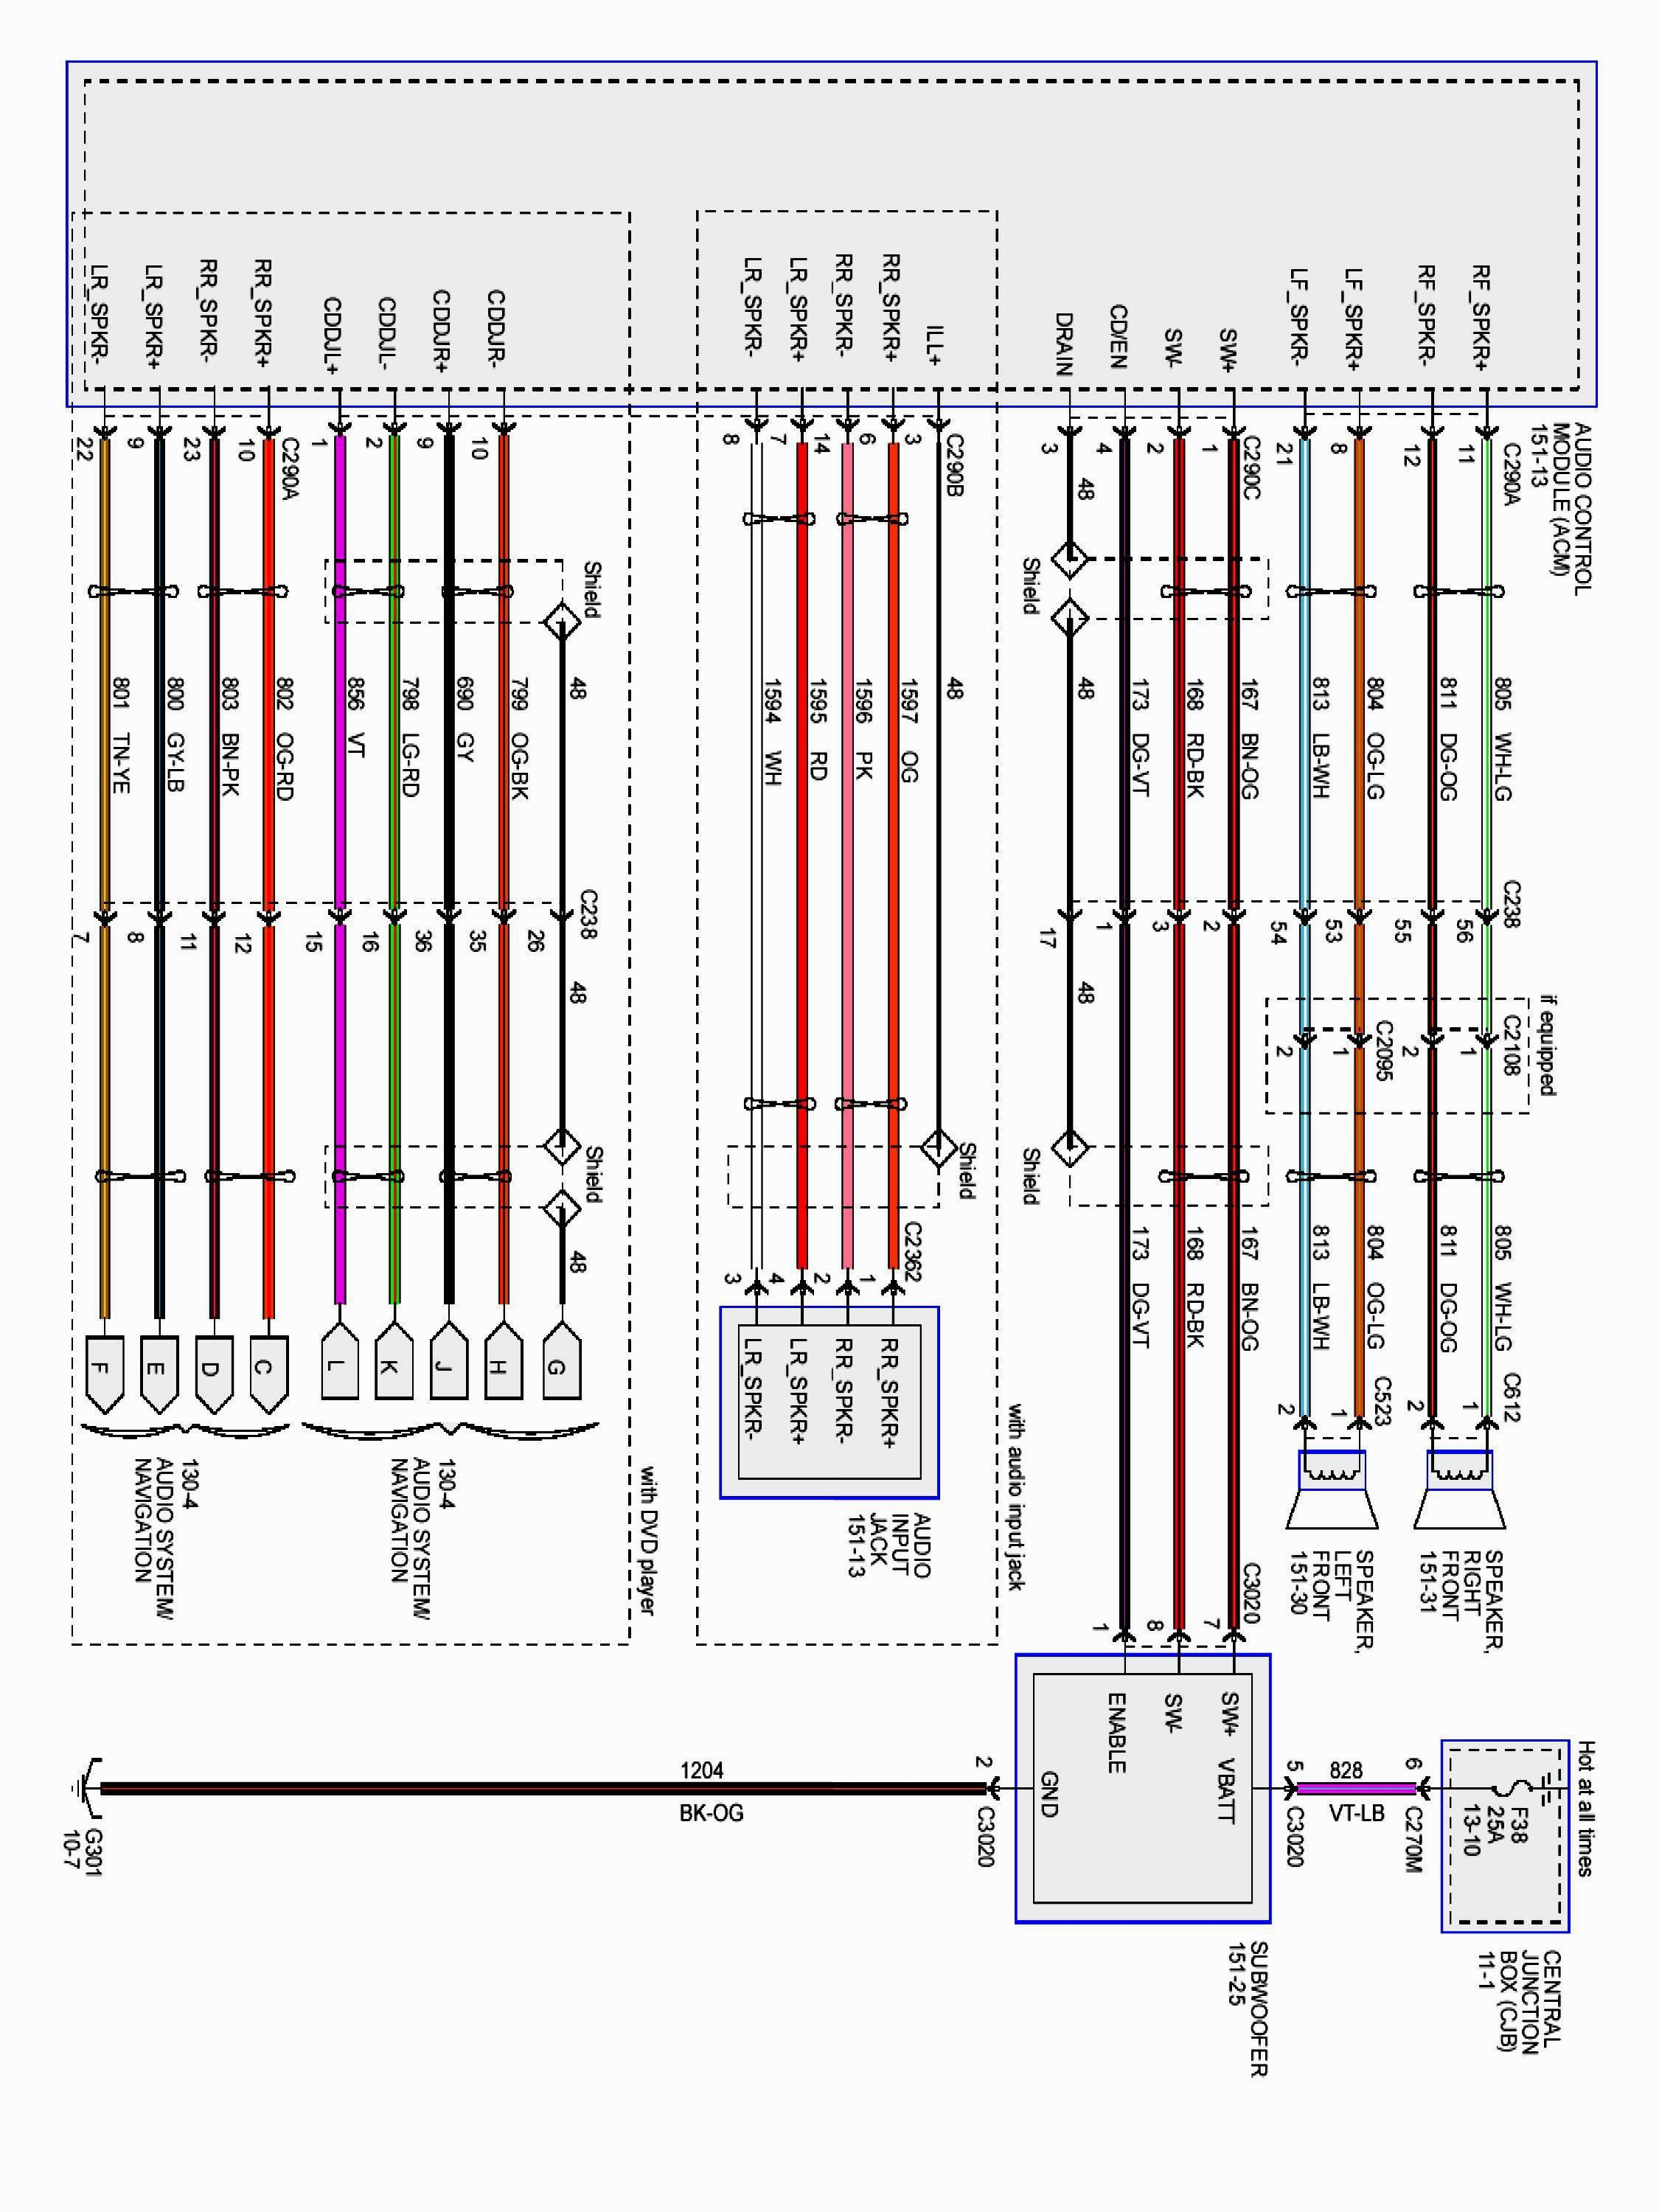 Audi A4 Headlamp Wiring Schematic - 1957 Chevy Wiring Harness Color Code -  sportster-wiring.tukune.jeanjaures37.fr | Audi A4 Headlamp Wiring Schematic |  | Wiring Diagram Resource